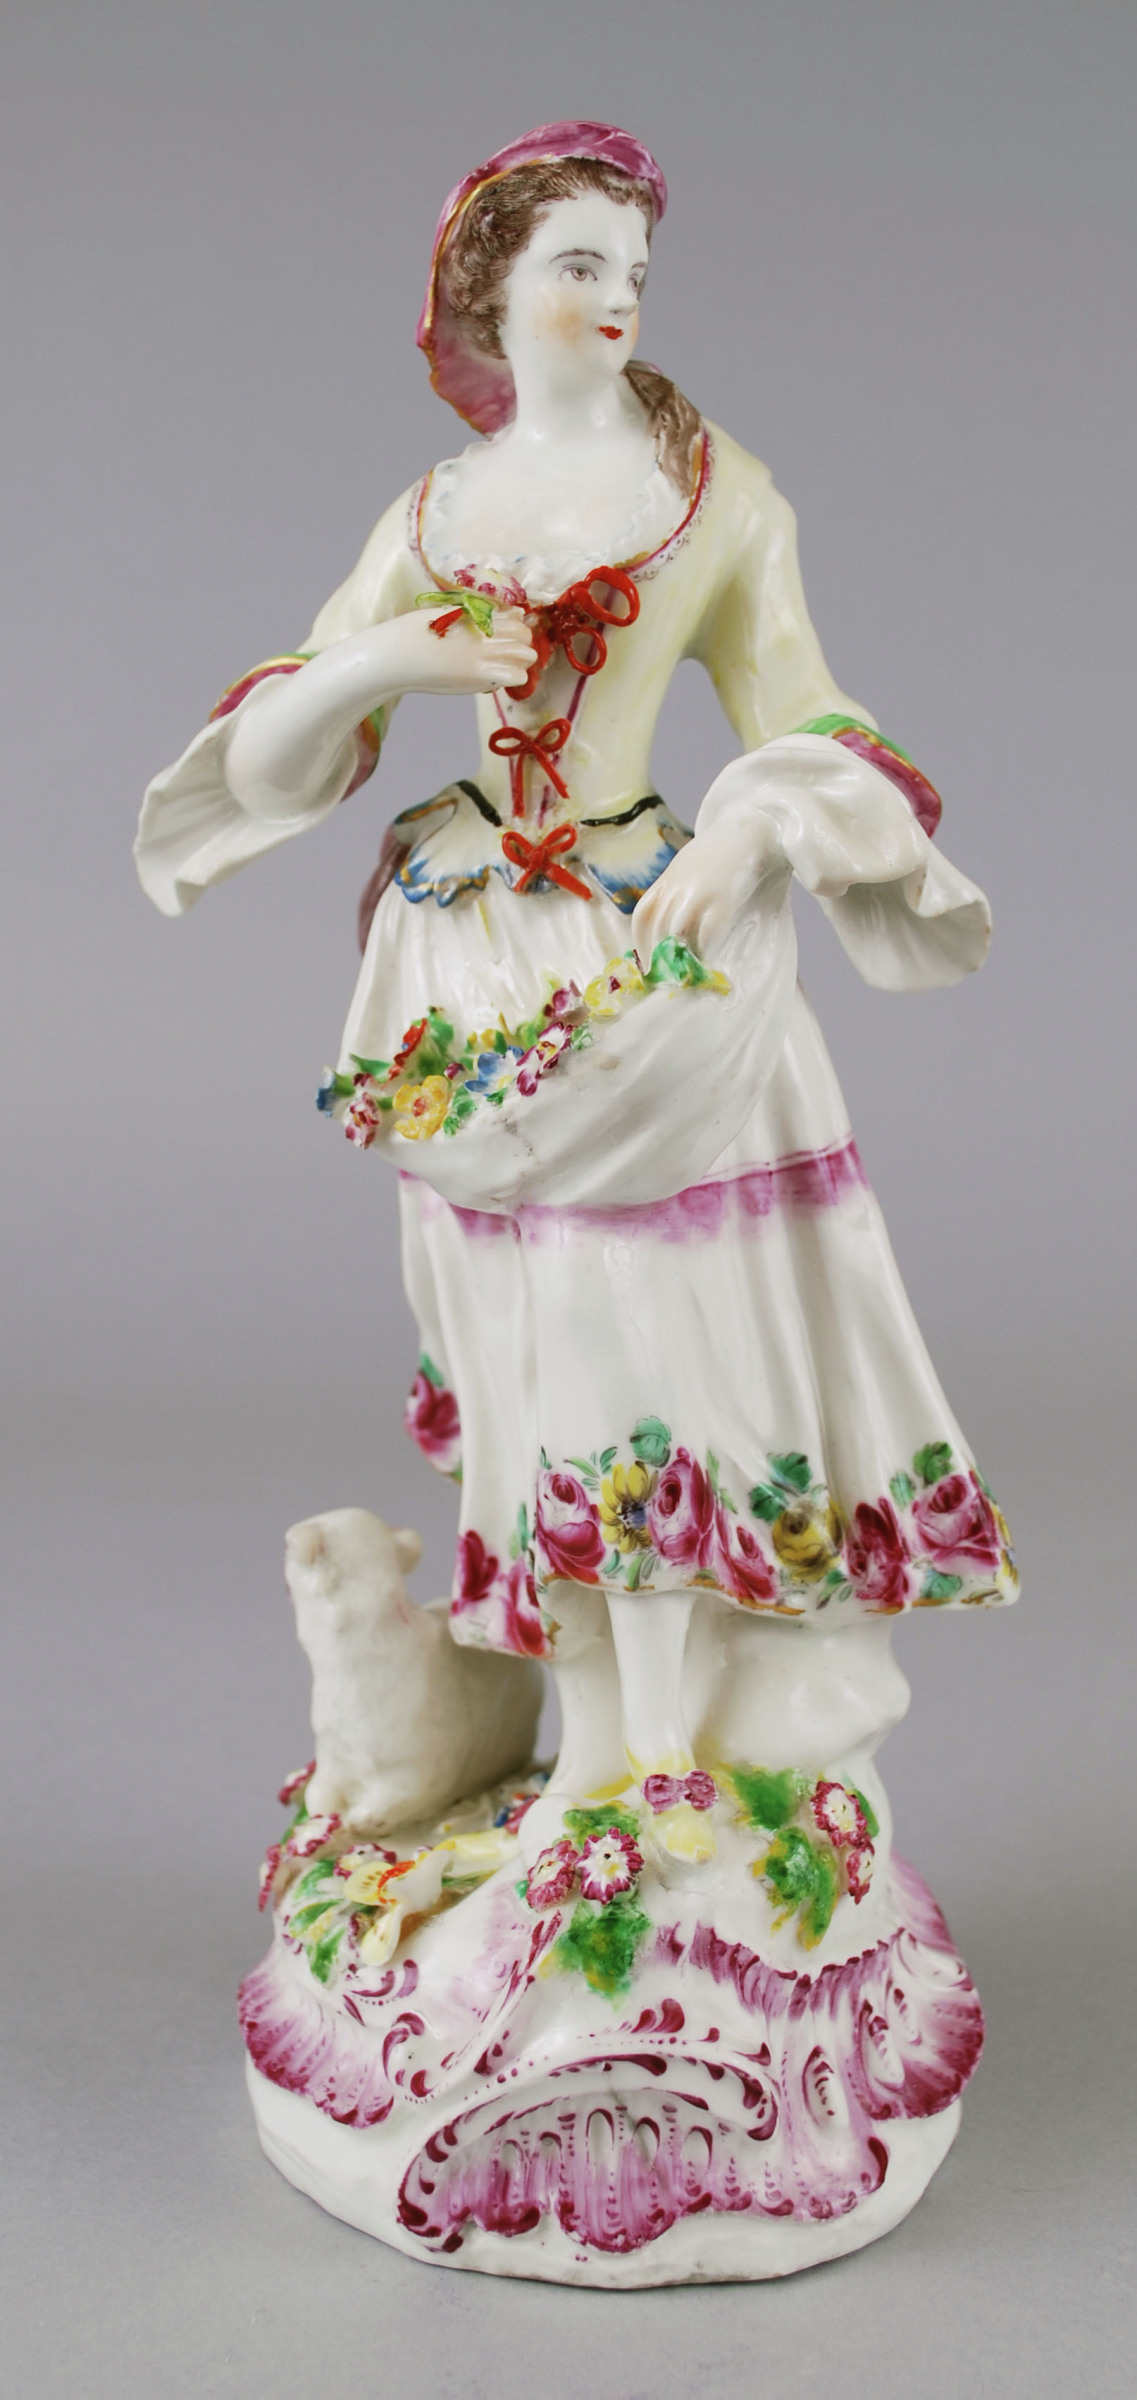 A soft-paste porcelain figural group of a standing female and seated on the ground near her feet is a lamb facing the opposite direction. The female figure is in a dress with painted flowers along the hem, with flowers at her feet. Her arms are bent outward, one arm lower with the apron's end draped over it is filled with flowers, while other hand holds a bouquet closer to her chest. The figural group is on a decorated scroll base painted in burgundy.